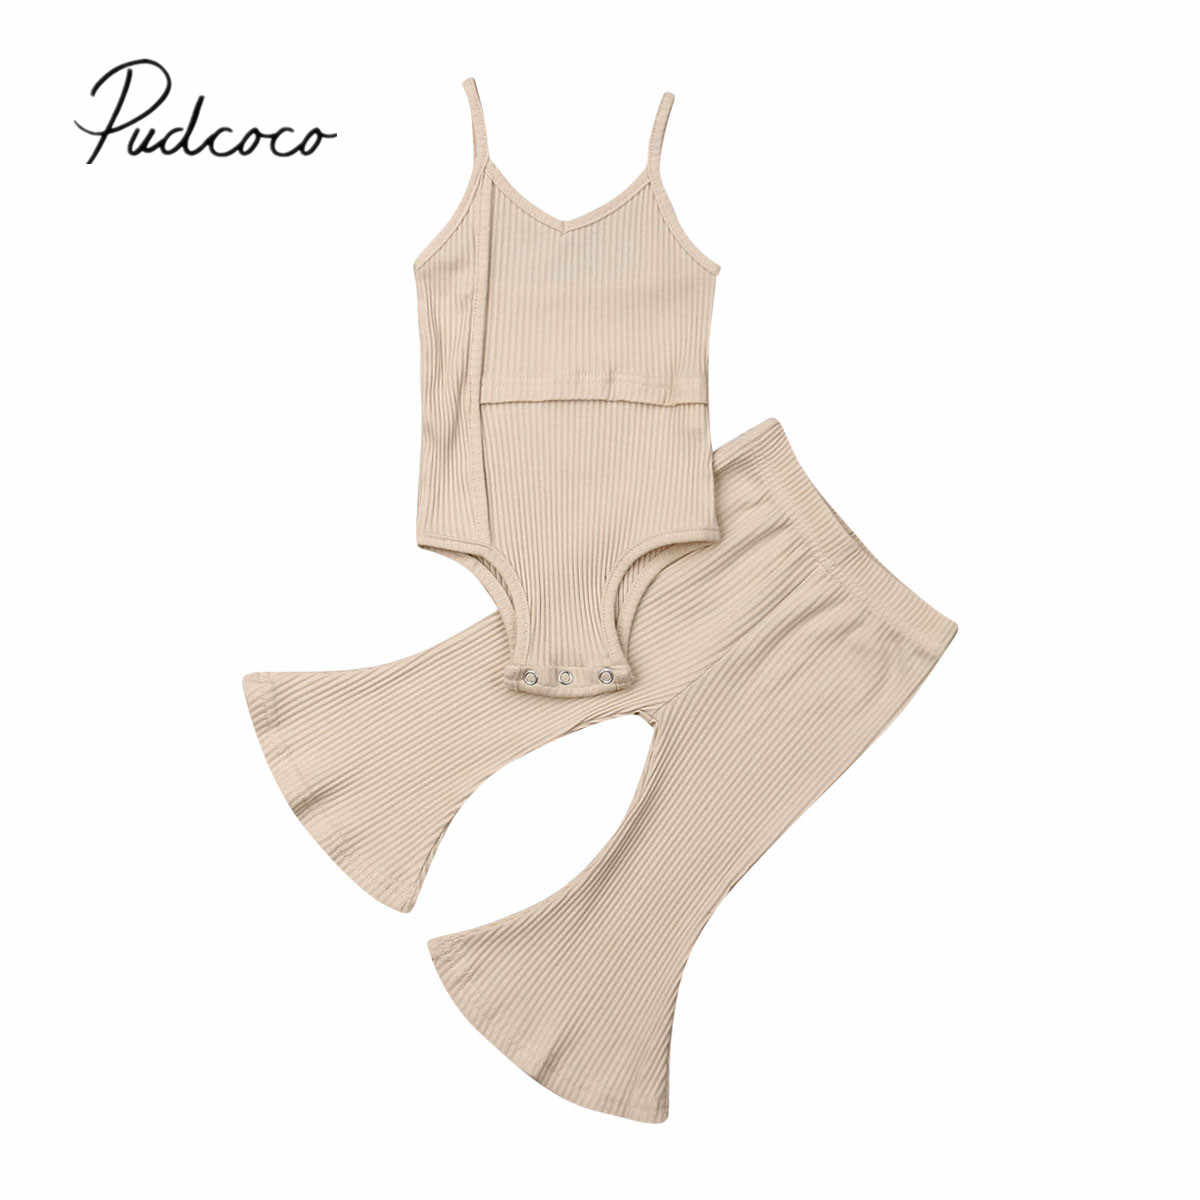 2019 Baby Summer Clothing Newborn Baby Girl Solid Sleeveless Romper Top+Long Bell Pants Bottoms Outfits Ribbed Clothes Sets 0-3Y